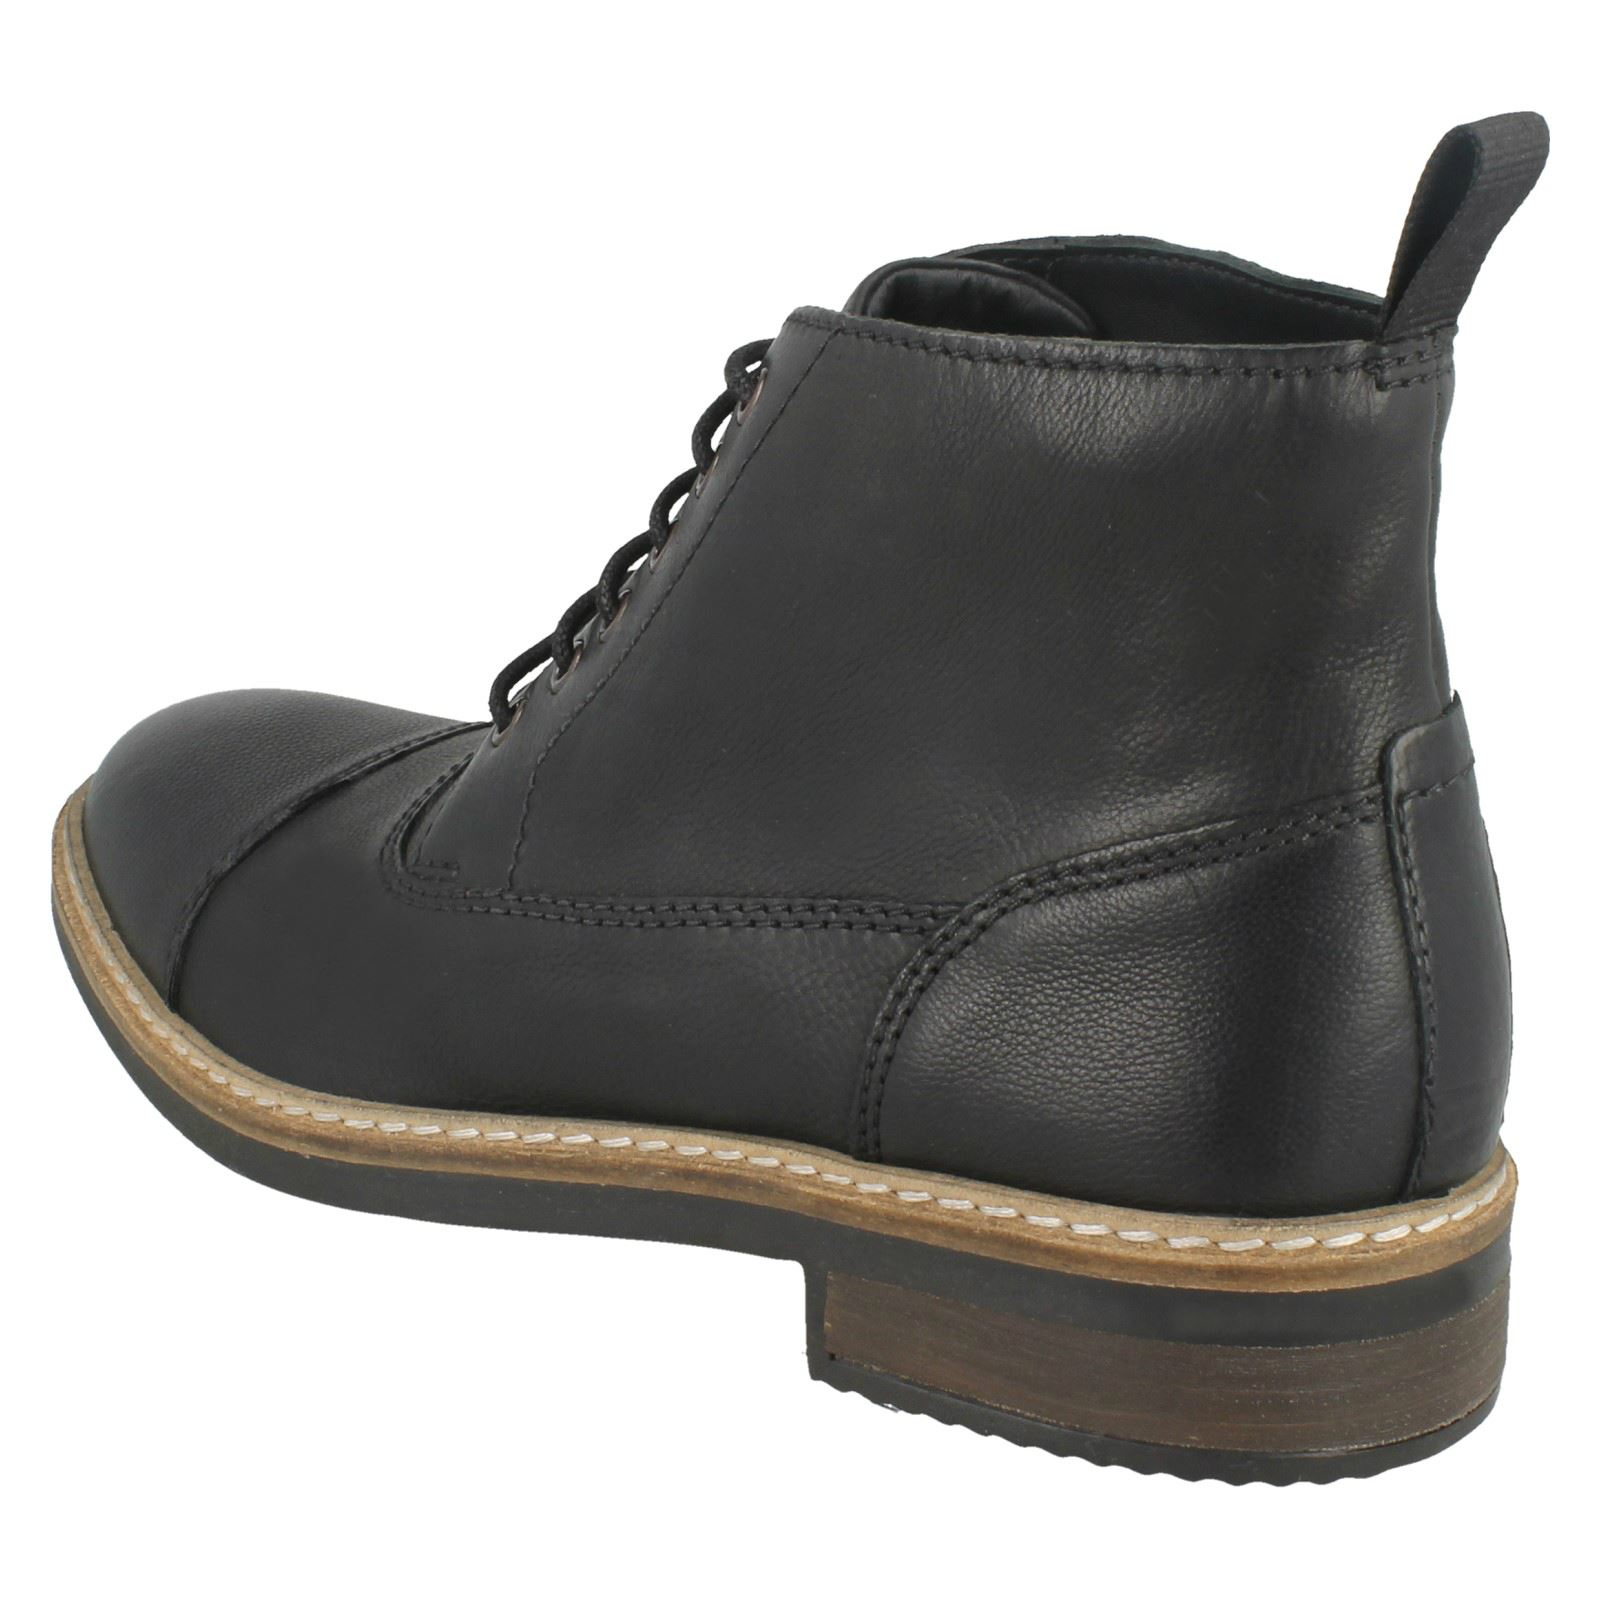 Mens Clarks Smart Ankle Boots Blackford Cap